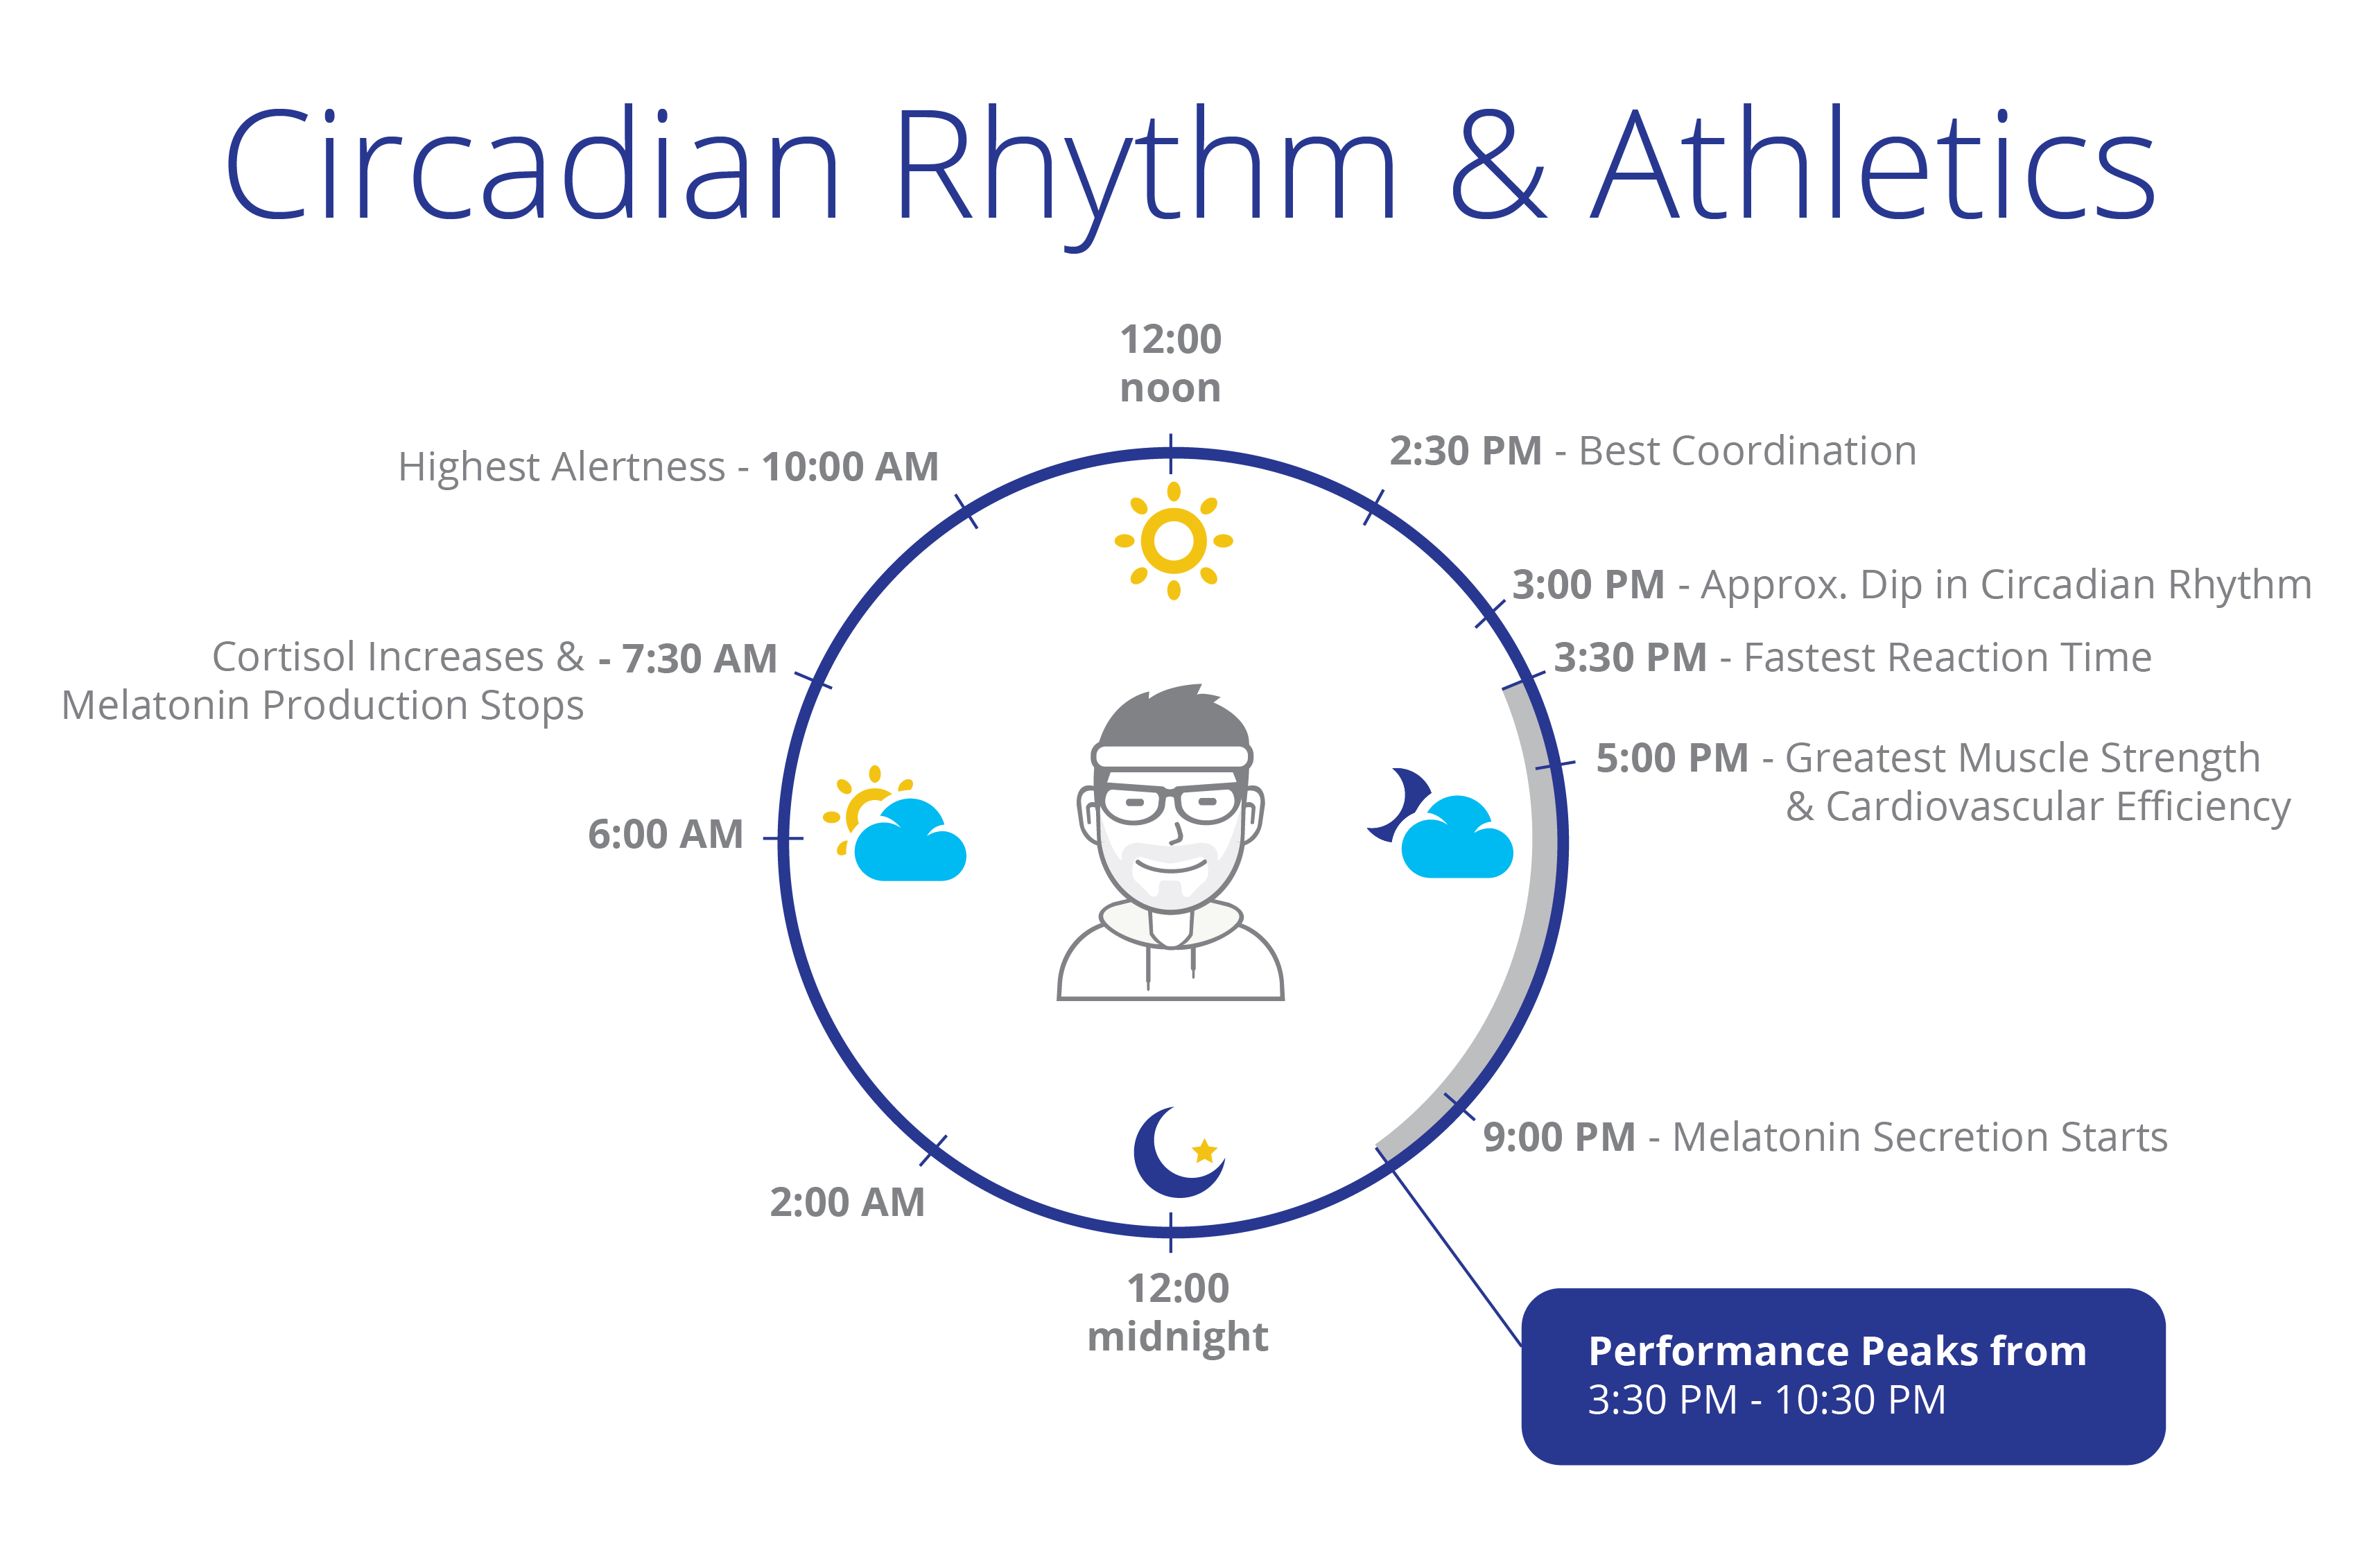 outline the circadian rhythm essay Circadian rhythms essay circadian rhythms and sleep deprivation the body is a magnificent structure operating on thousands of small to microscopic systems that provide proper: nutrition, energy, and responses that work as a unit to keep the host living.